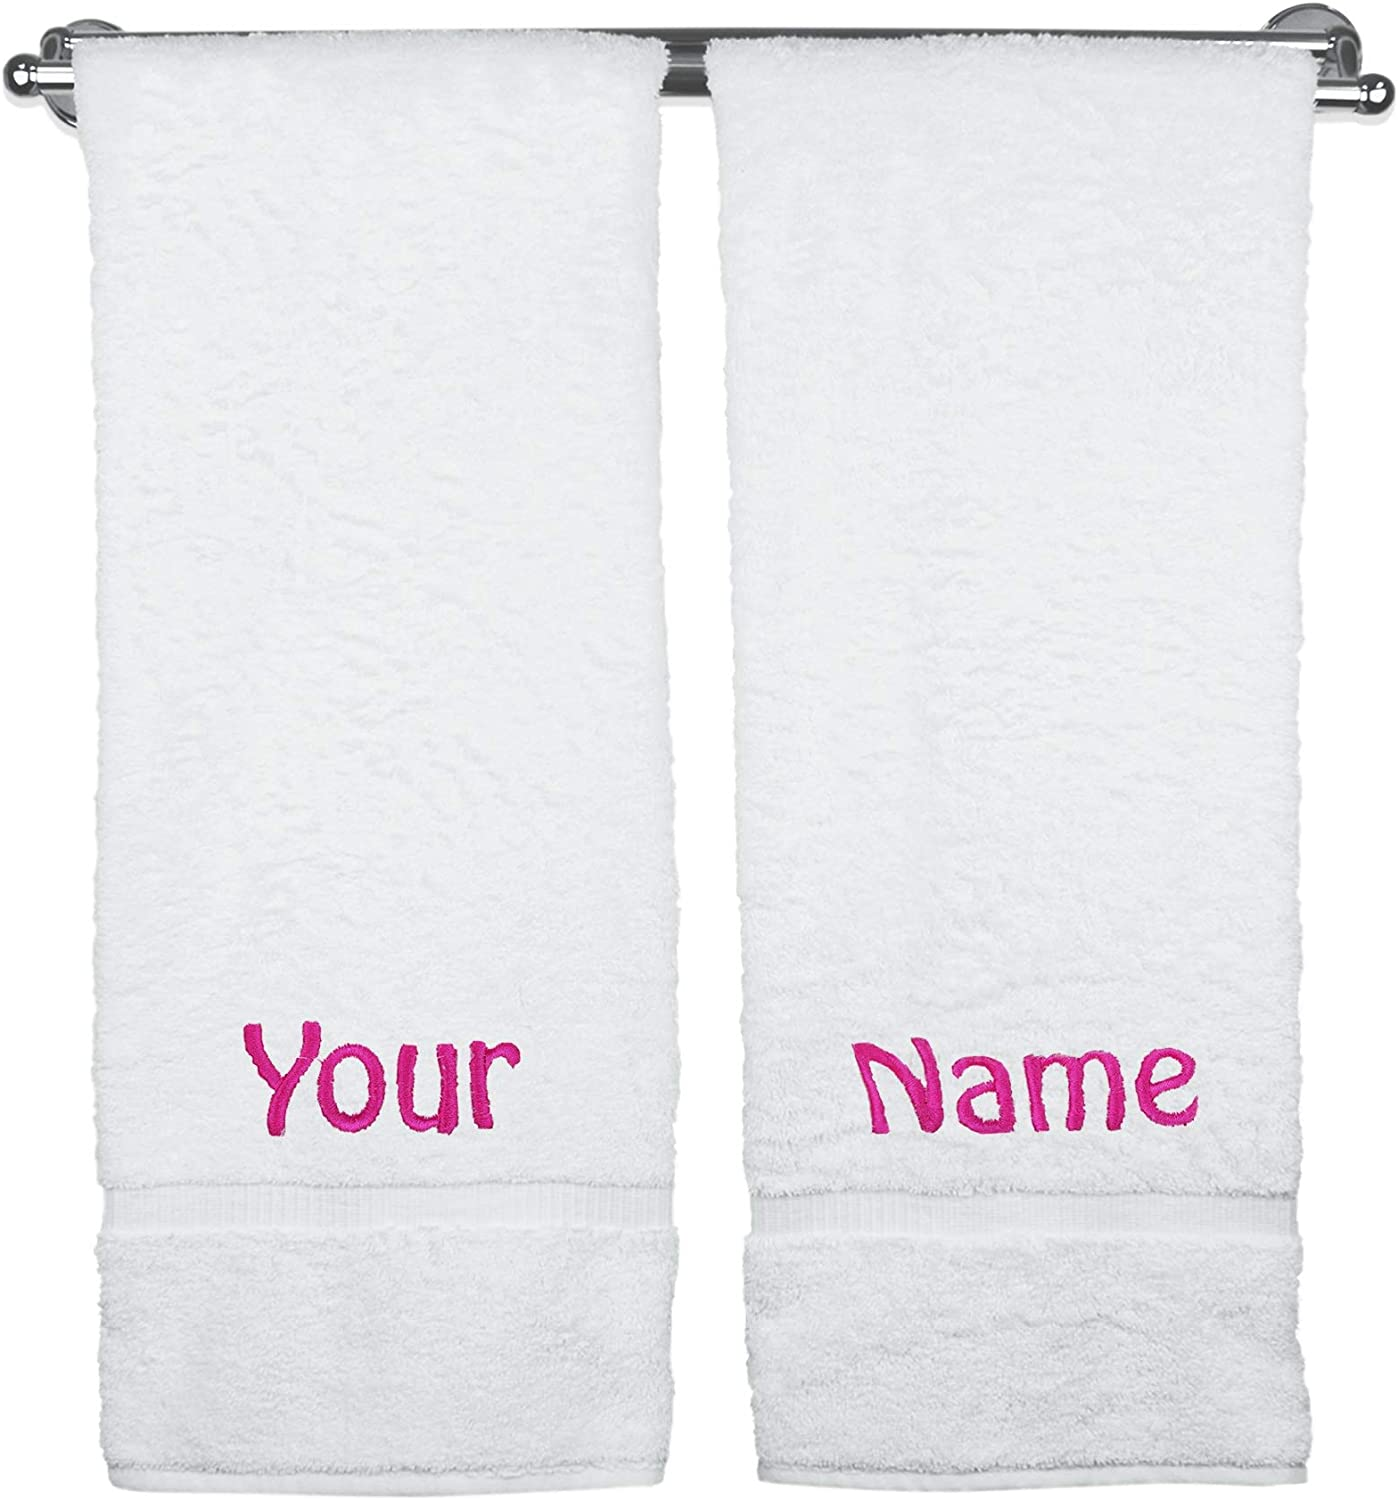 CHRISTMAS TREES and Name Embroidered on Towels Bath Robe Hooded Towel cotton